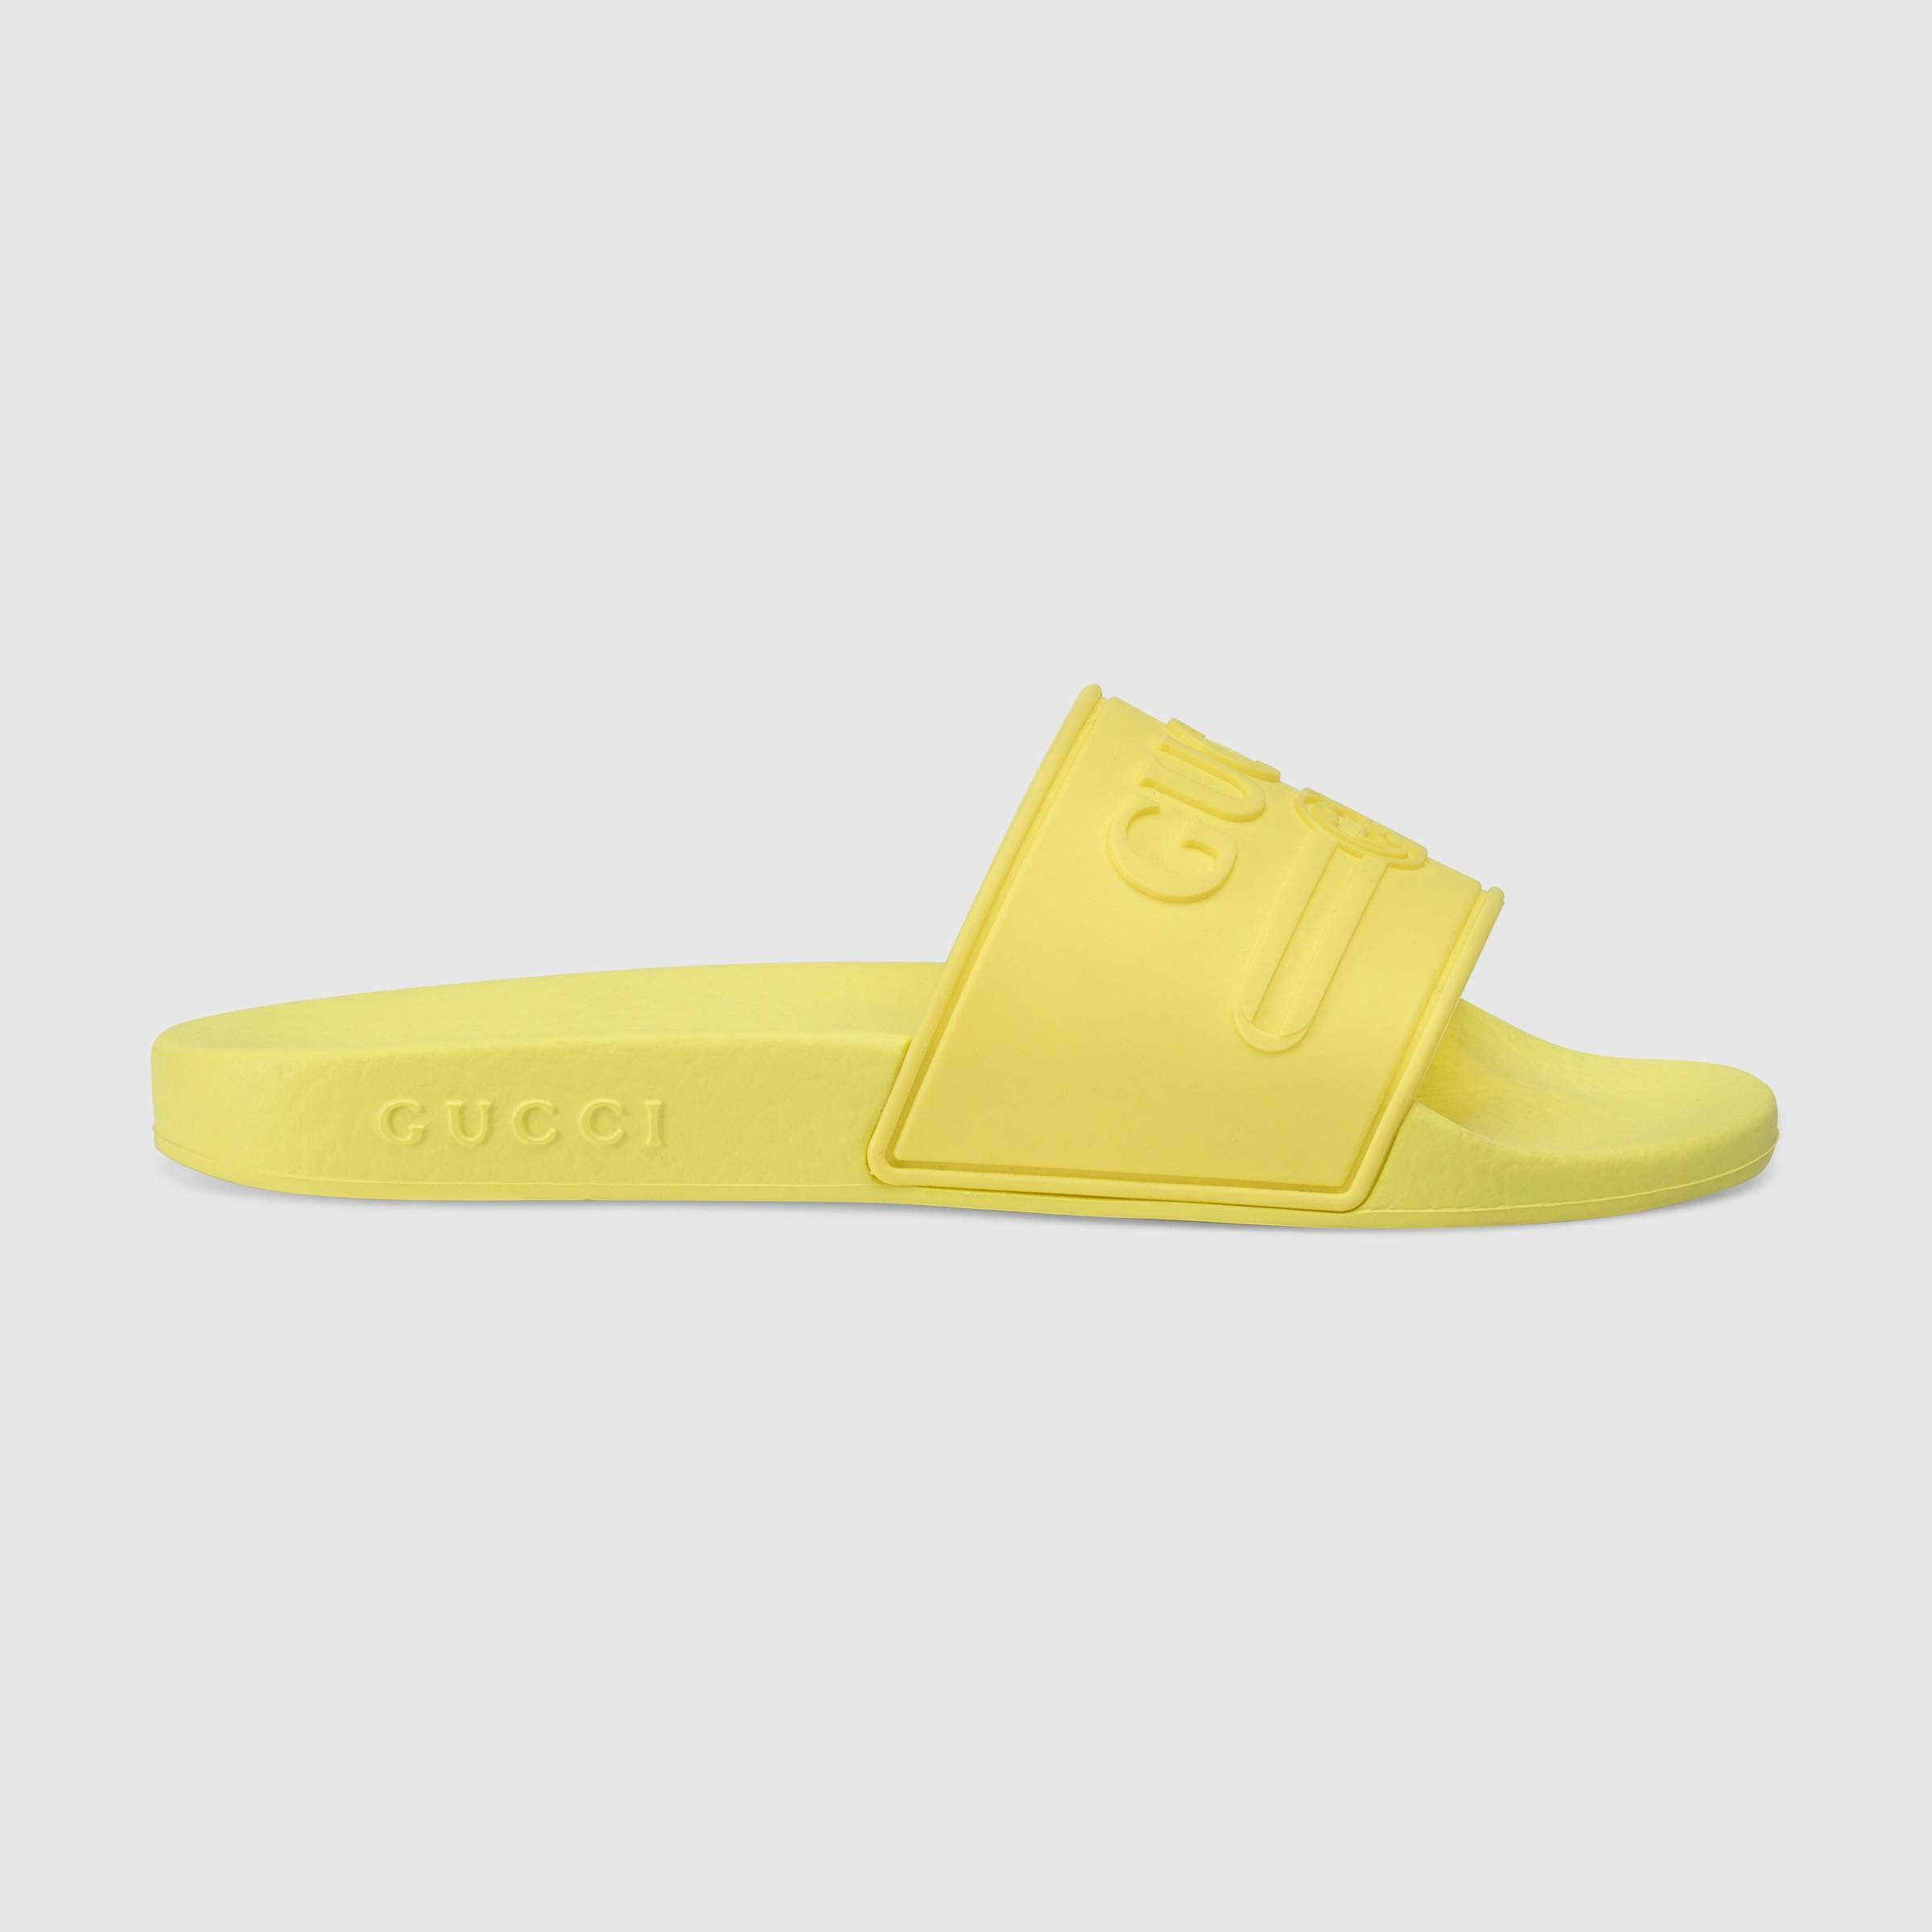 ae4fe8f4c Children's Gucci logo rubber slide sandal in Fluorescent yellow rubber |  Gucci Girls' Sandals & Slides